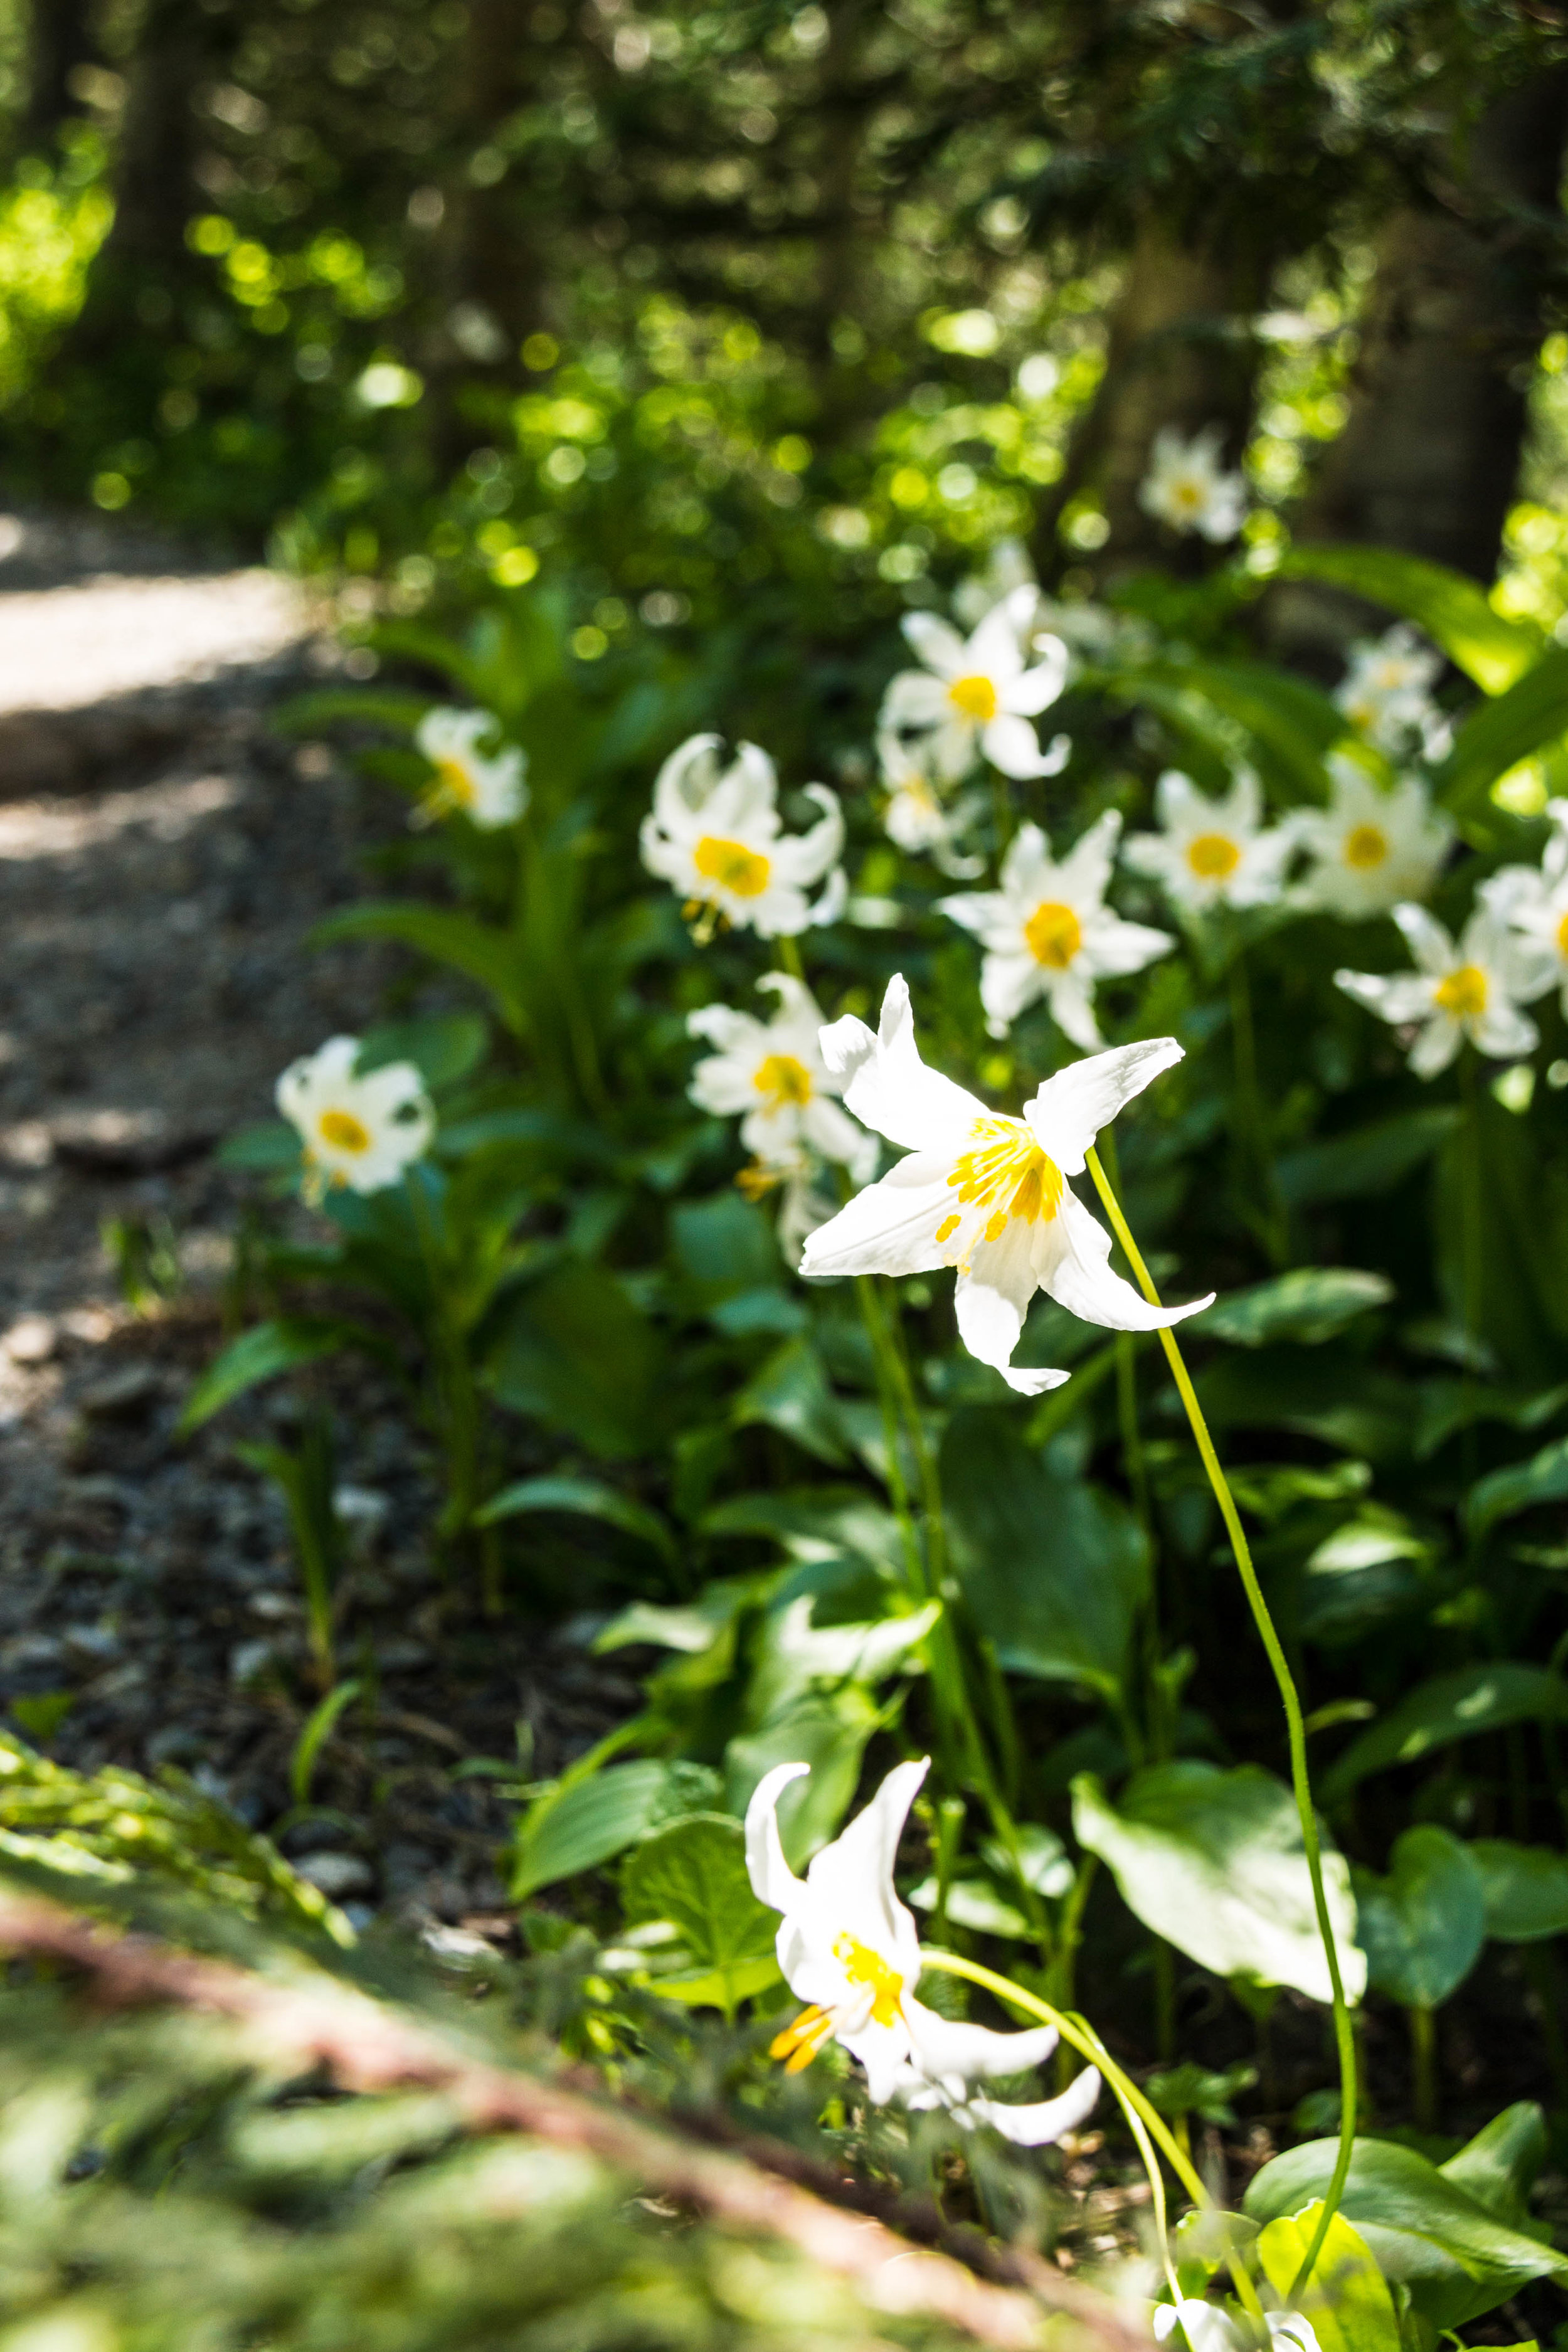 The delicate and short-lived blooms of the avalanche lily